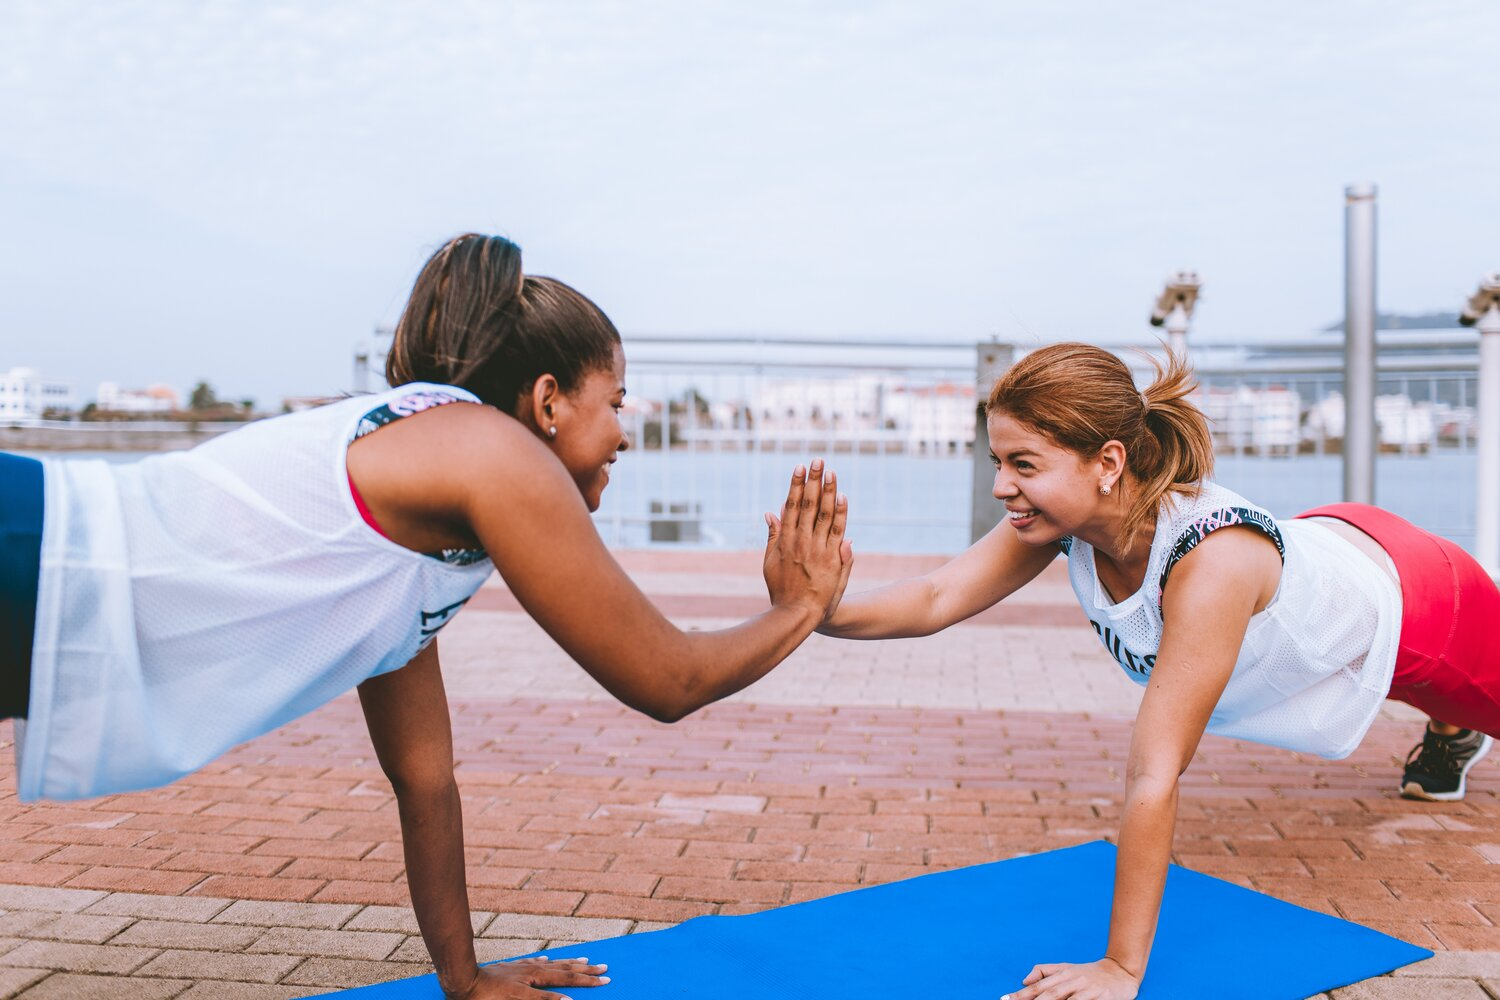 two-woman-doing-exercise-1671217.jpg